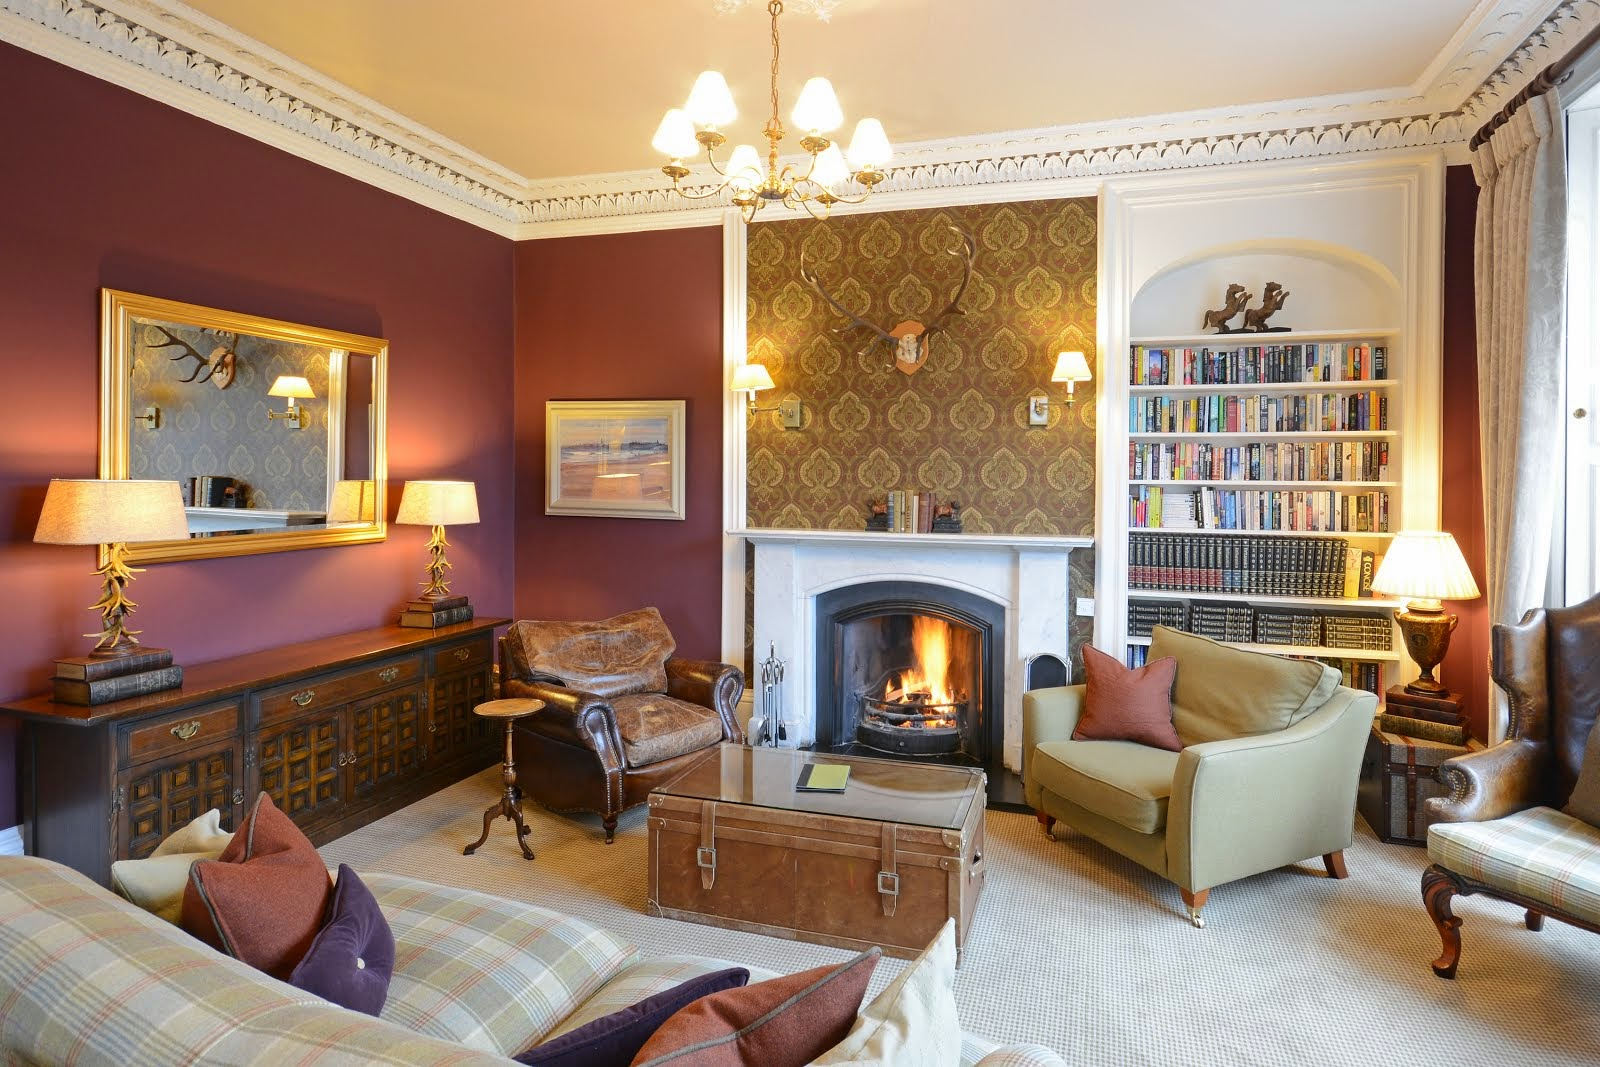 Log fires in the Lounge